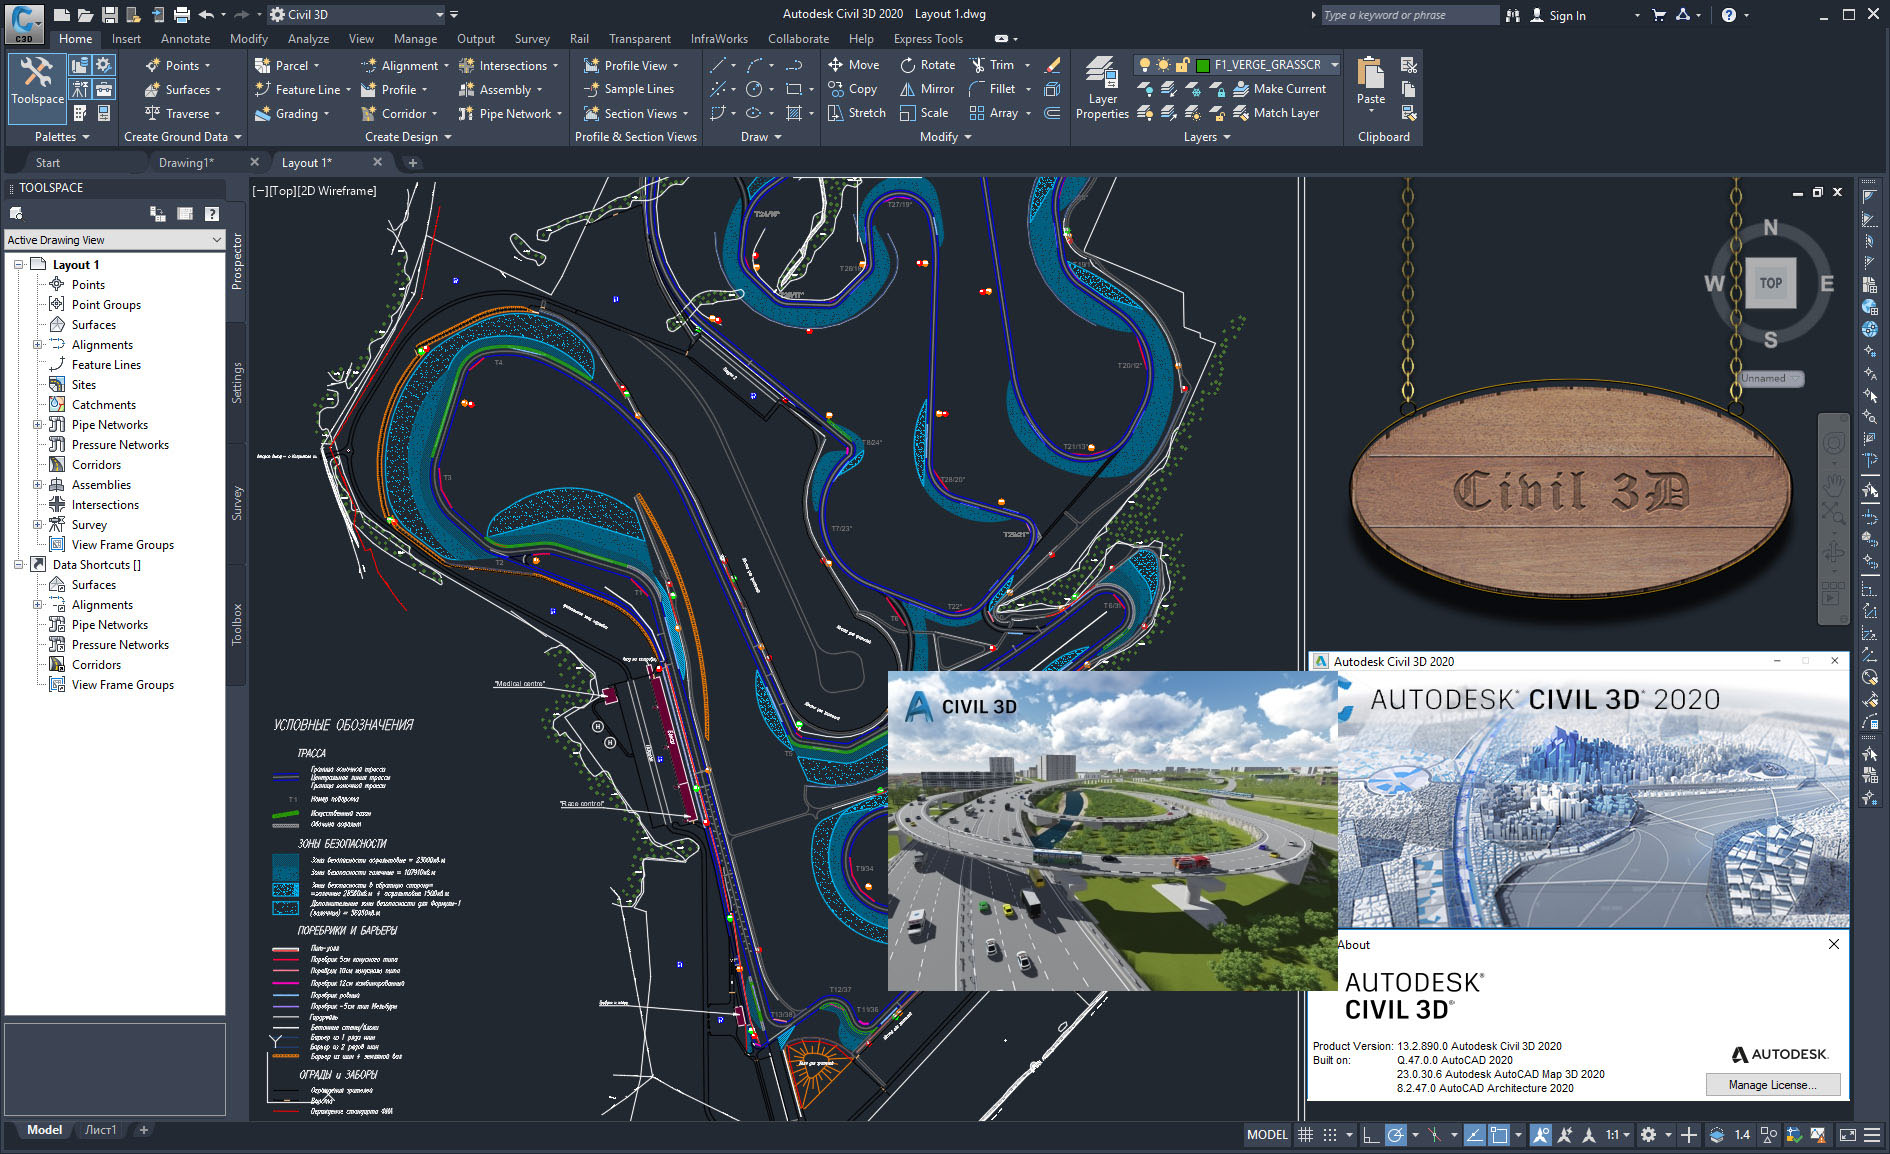 Working with Autodesk Civil 3D 2020 x64 full licensse